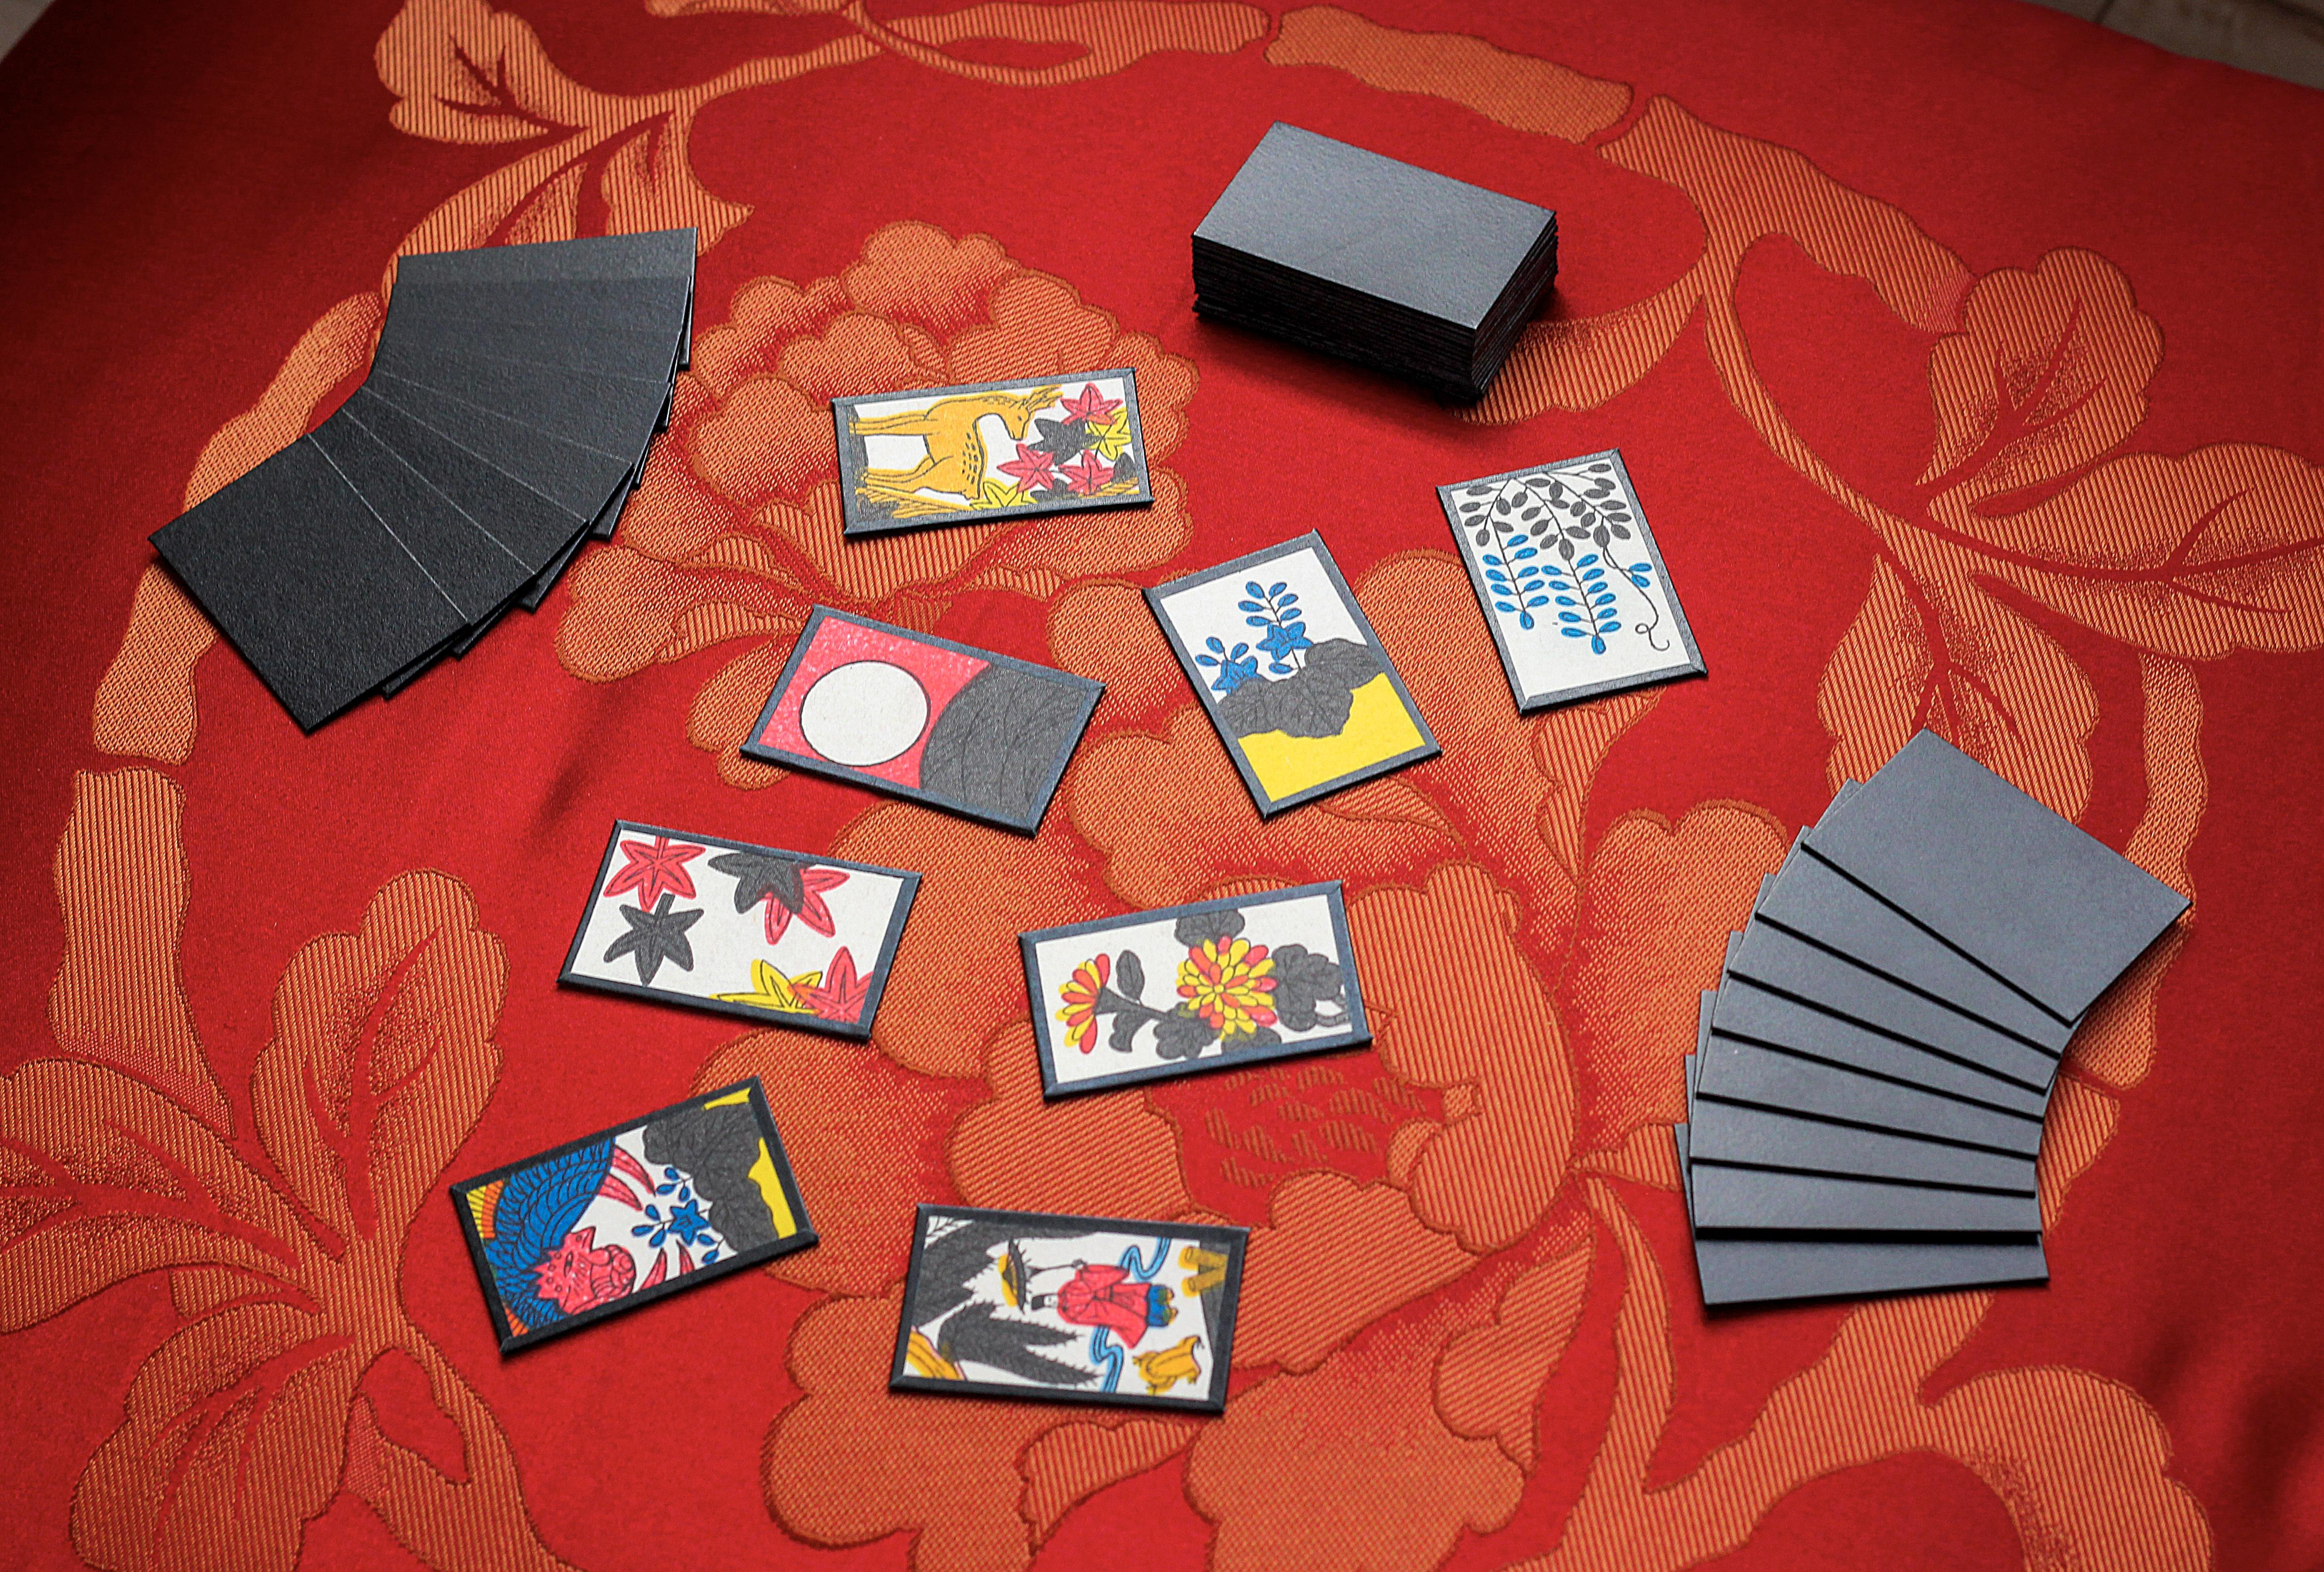 Hanafuda, le jeu de cartes traditionnel japonais